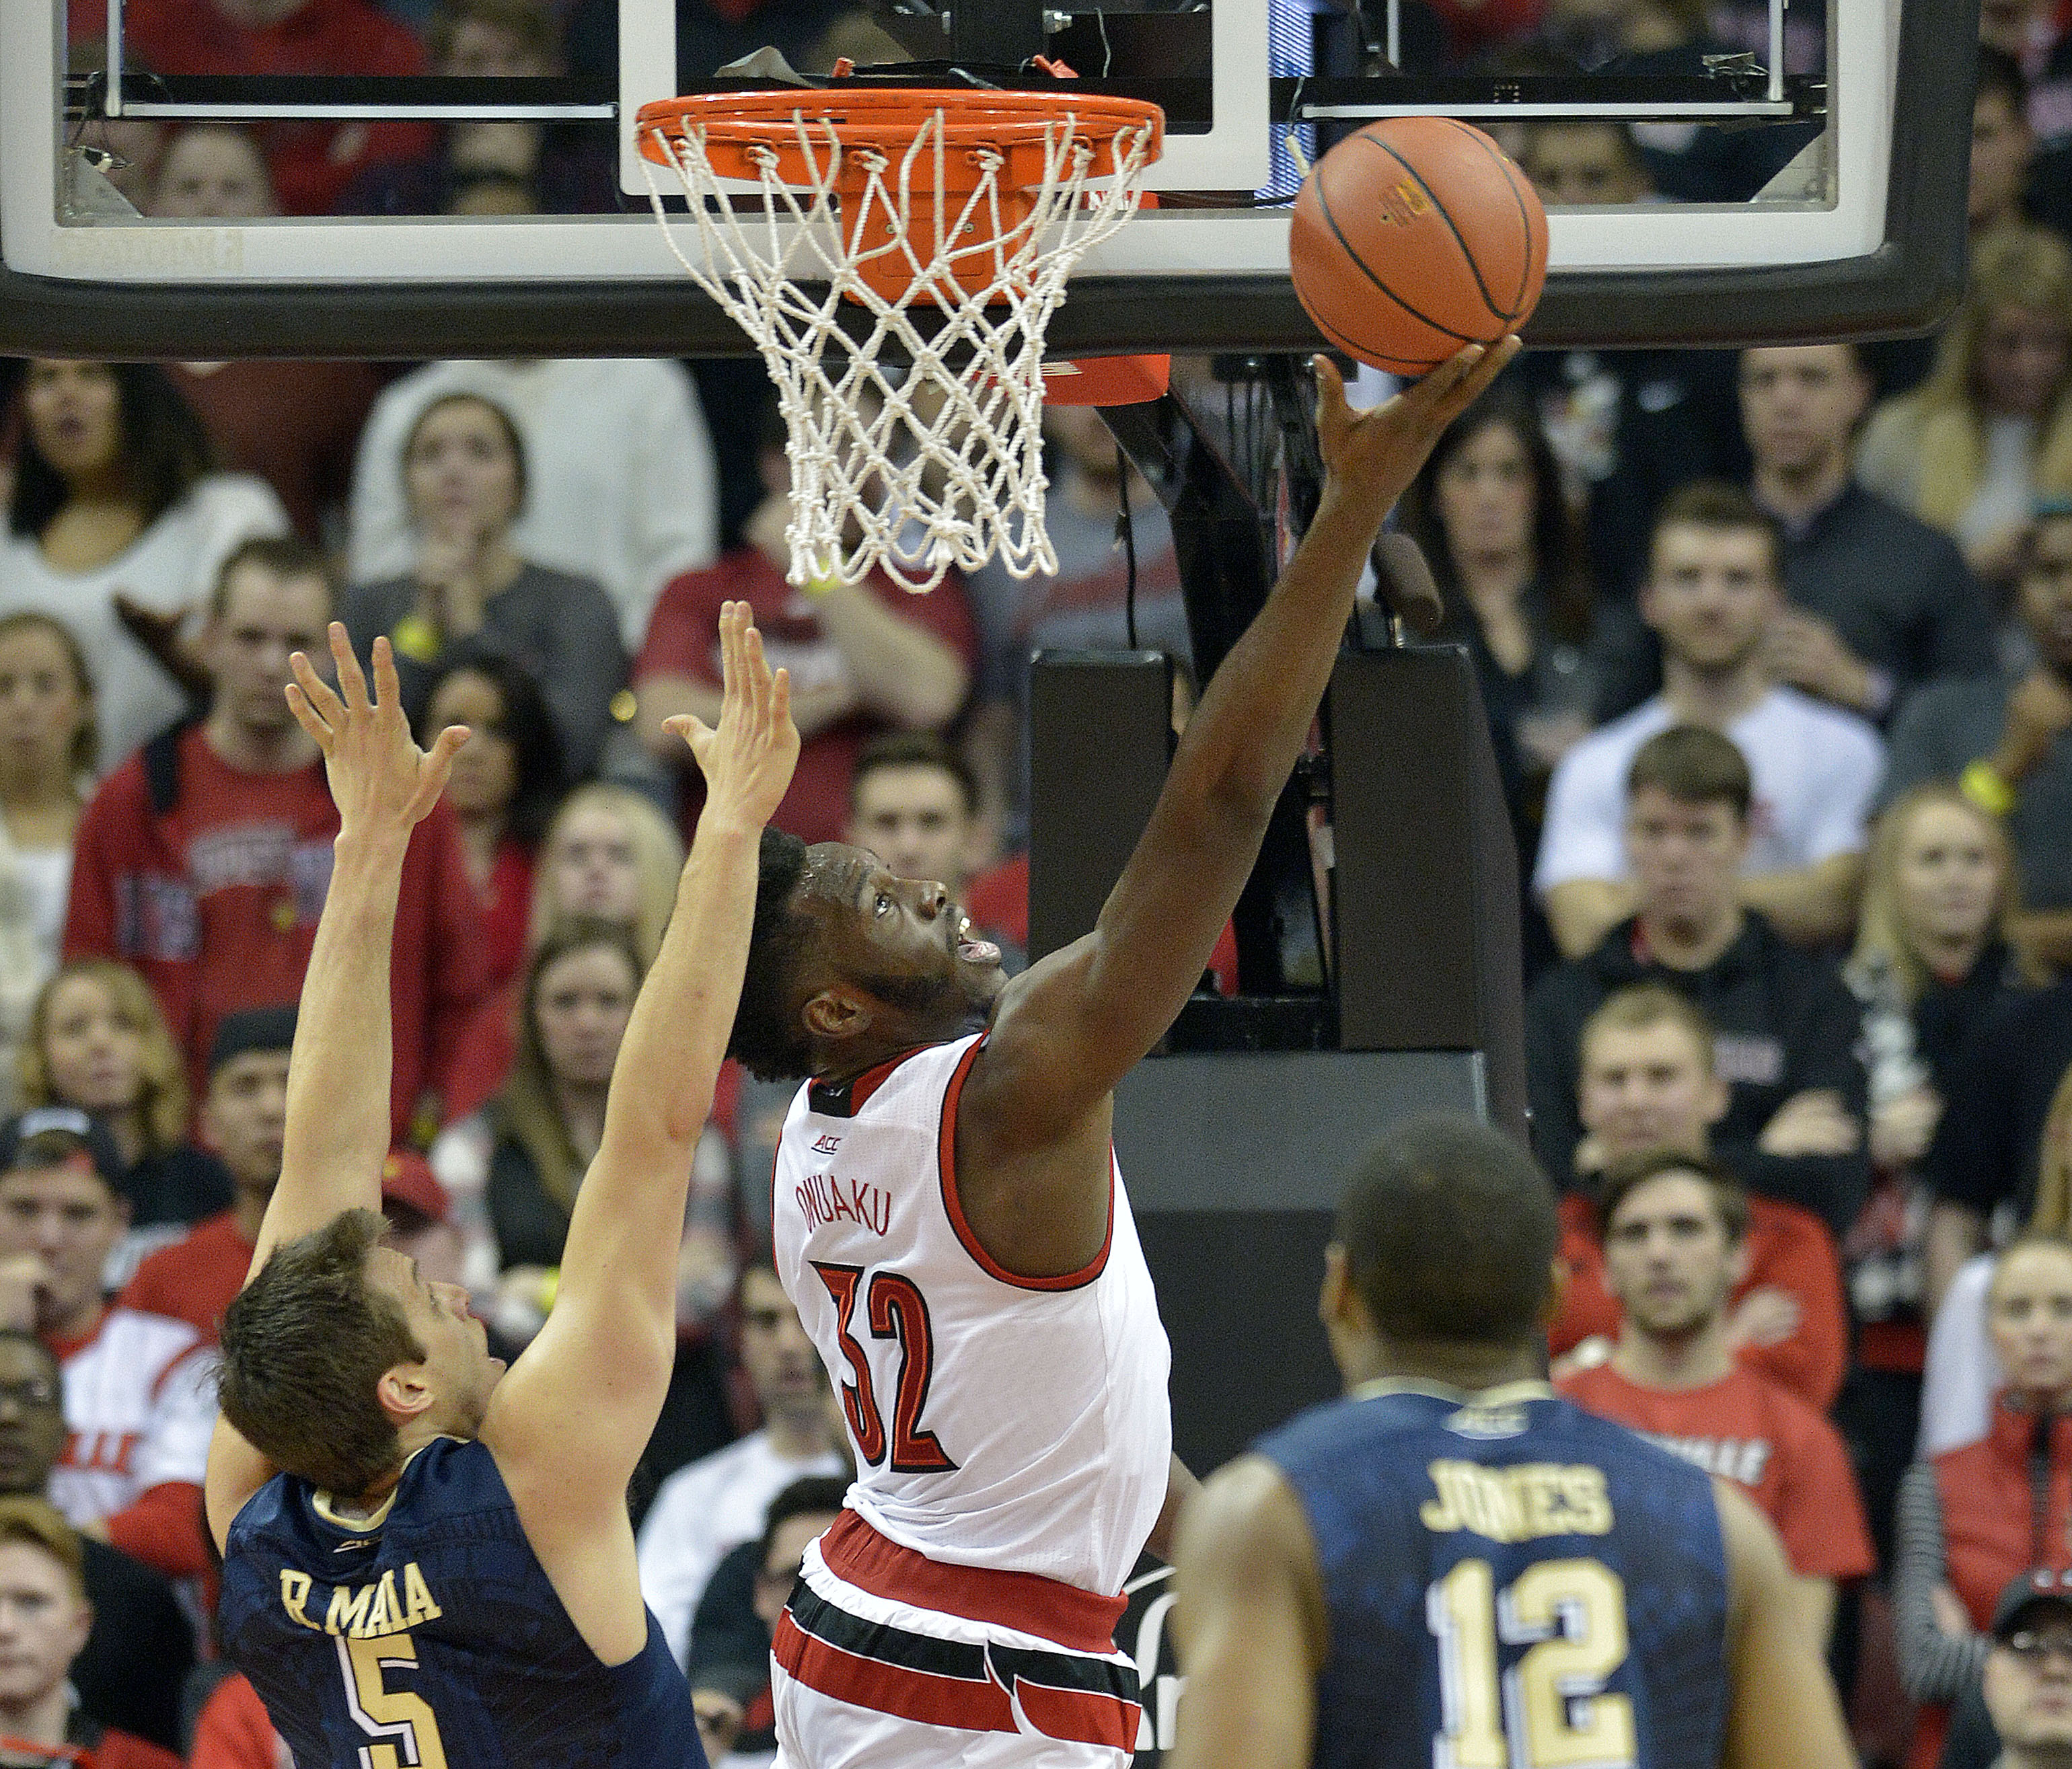 Louisville's Chinanu Onuaku (32) attempts a layup past the defense of Pittsburgh's Rafael Maia (5) and Chris Jones (12) during the first half of an NCAA college basketball game, Thursday, Jan. 14, 2016, in Louisville, Ky. (AP Photo/Timothy D. Easley)